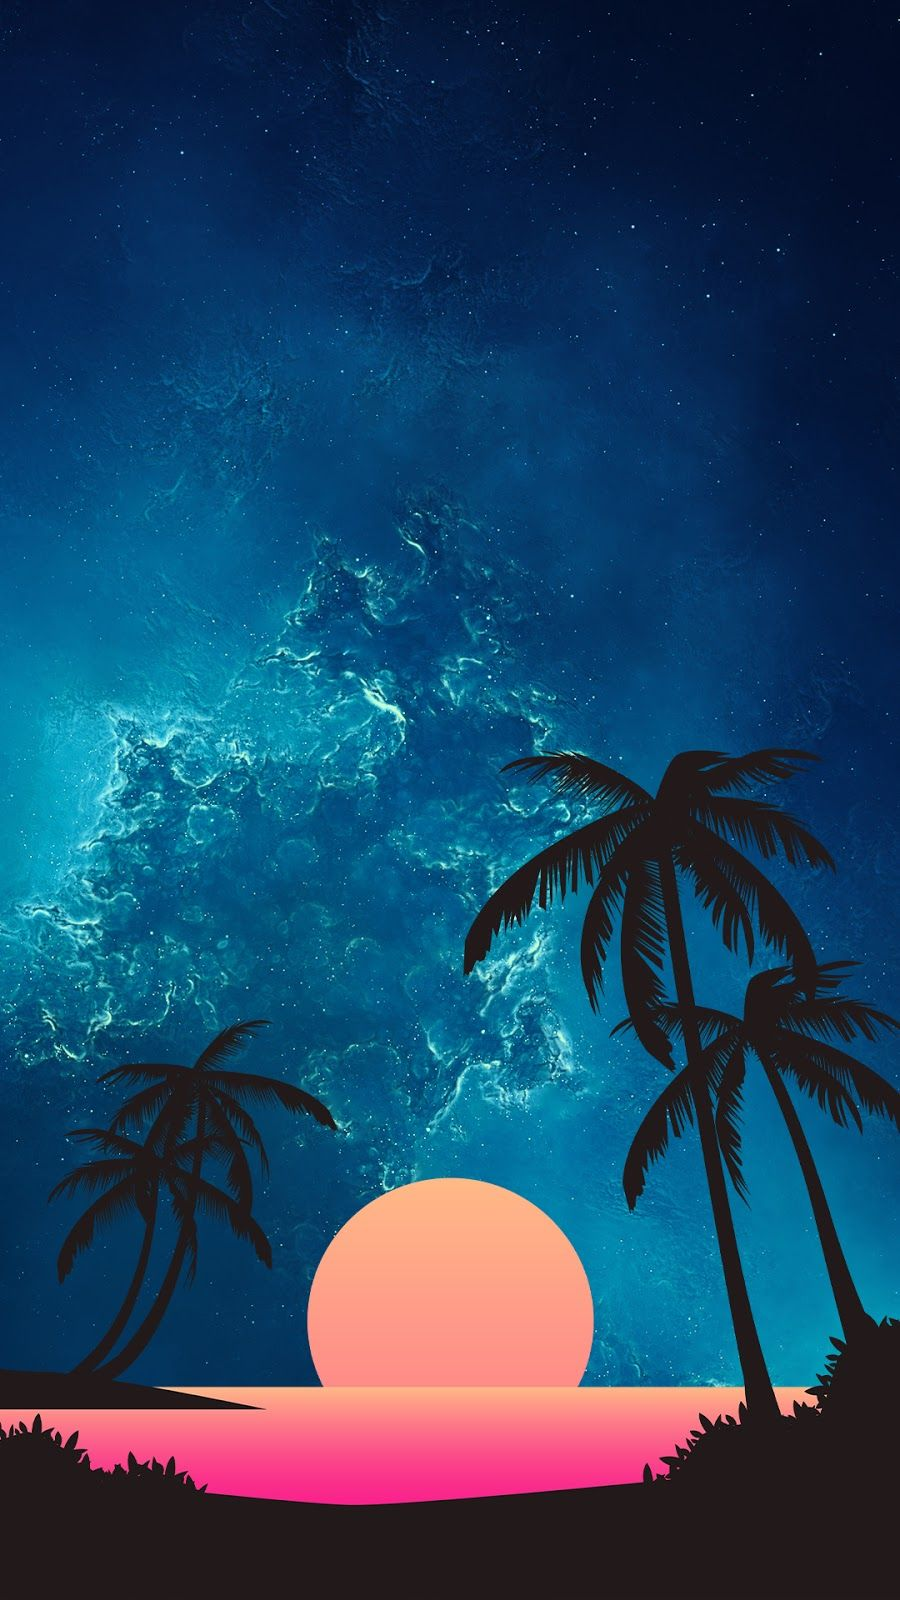 Phone Wallpaper Collection 222 Cool Wallpapers Heroscreen Cc In 2020 Cool Wallpaper Phone Wallpaper Night Sky Wallpaper